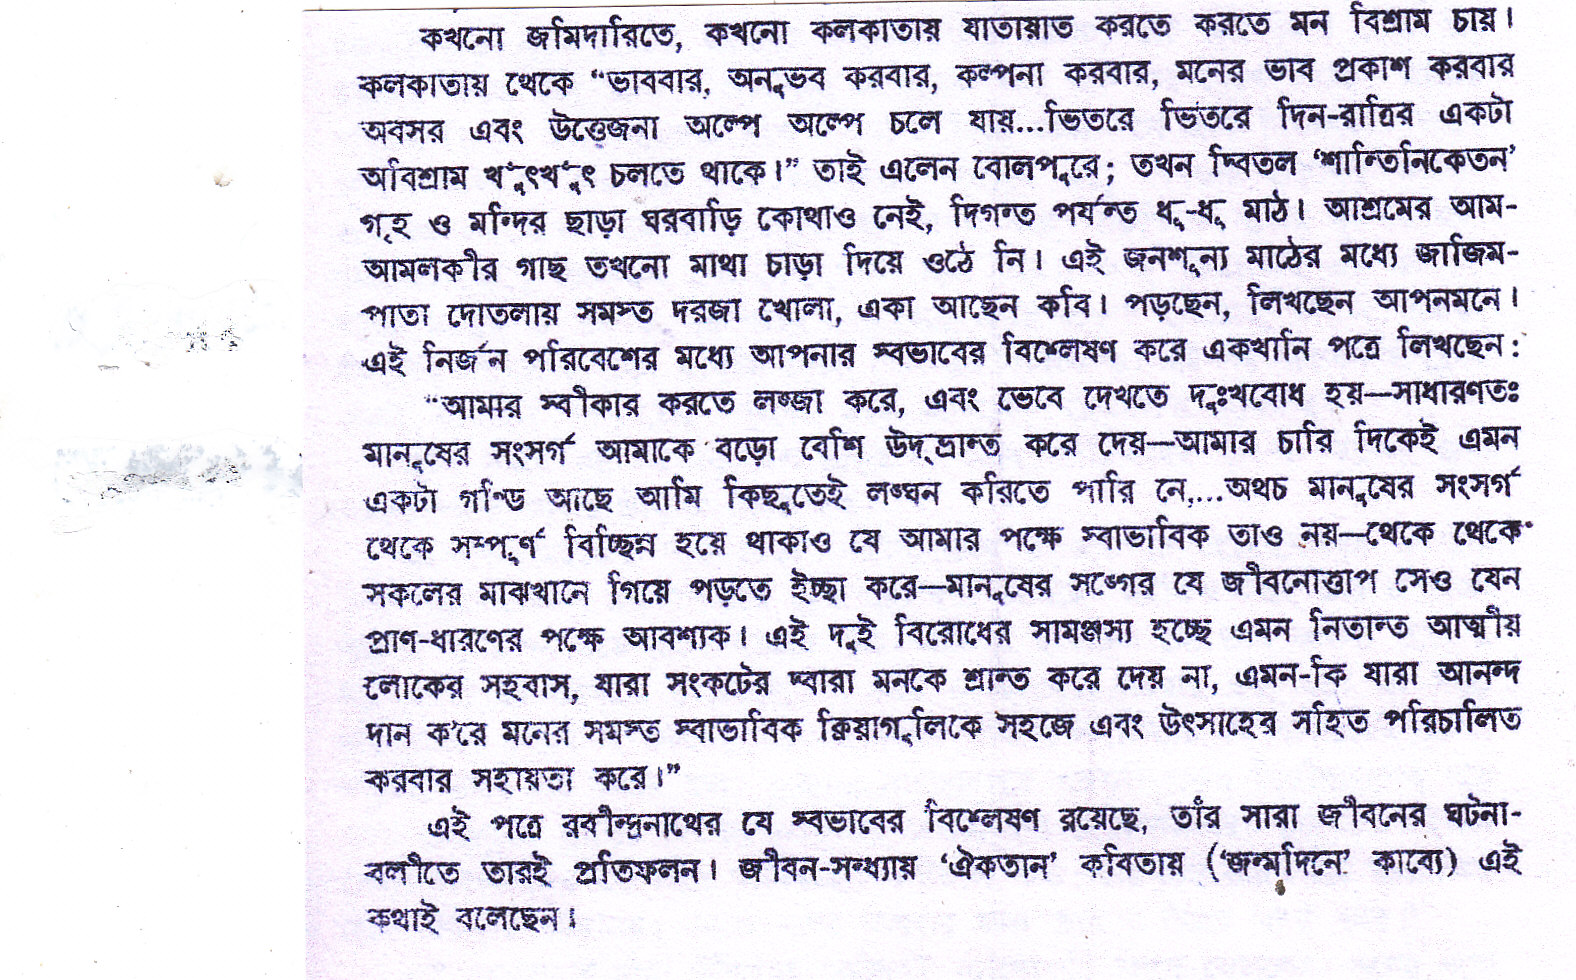 essay on rabindranath tagore in bengali essay on rabindranath  smaraka grantha nabin chandra sen and rabindranath tagore were elected vice president for the first year